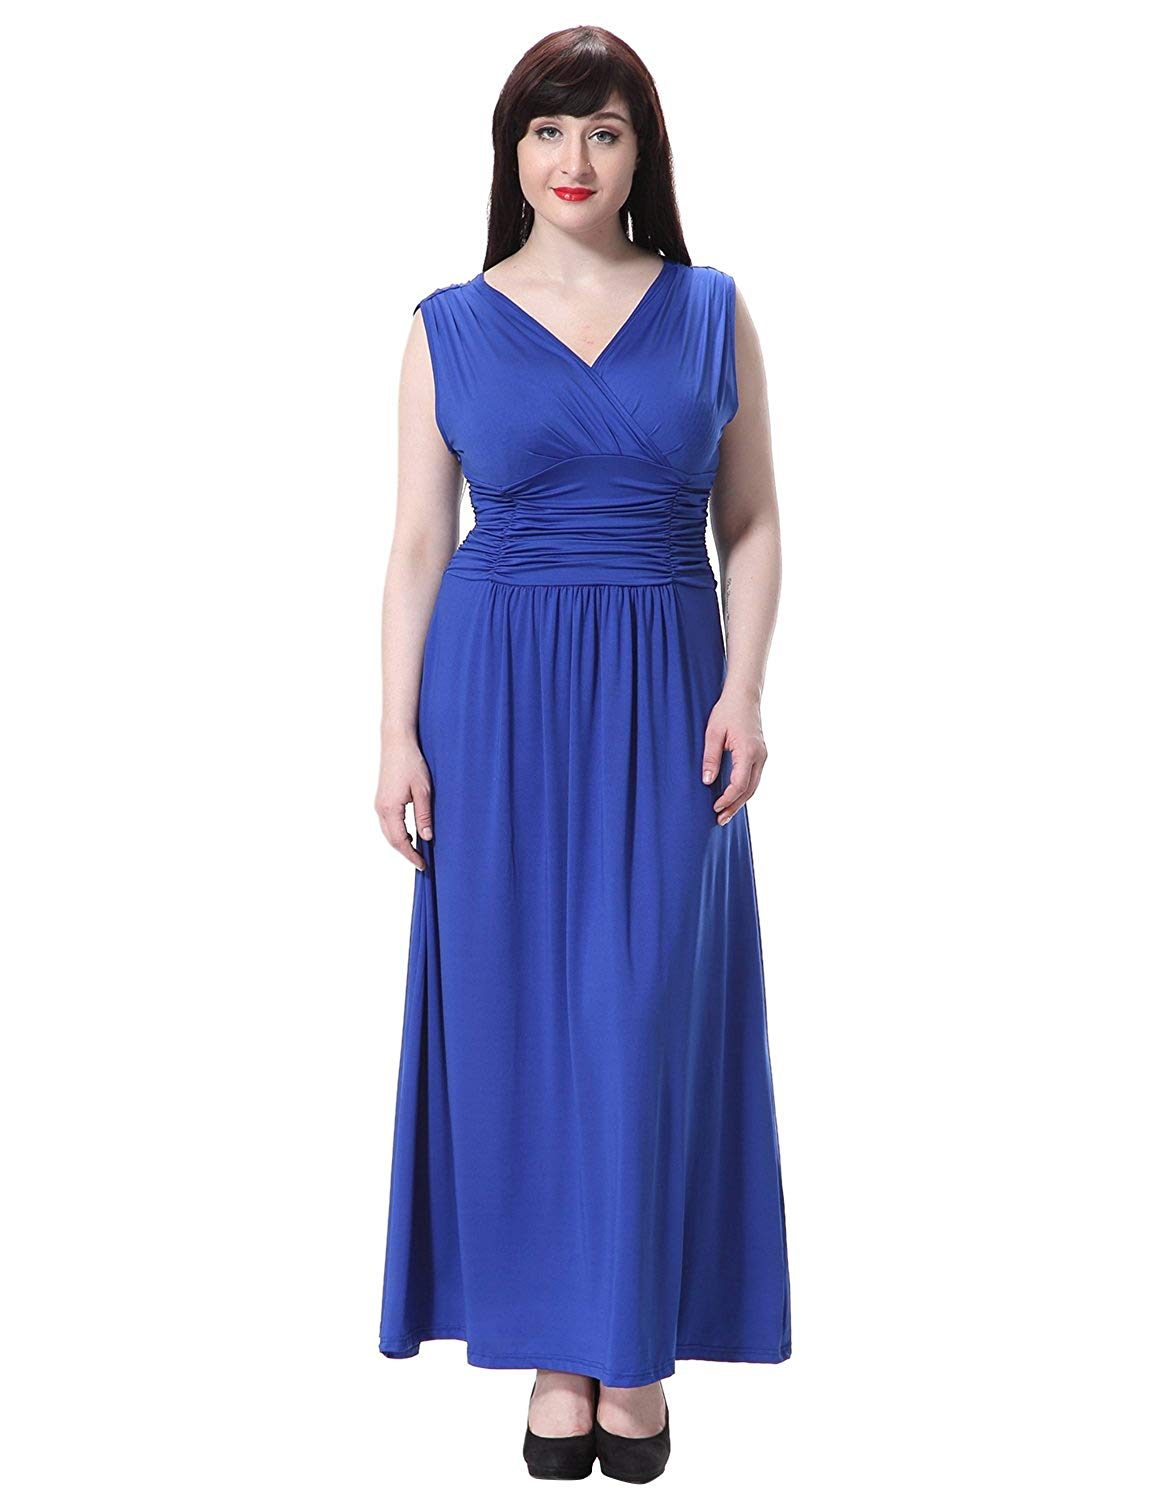 09f4bba5eda8 Get Quotations · Sue&Joe Women's Maxi Dress Summer V-neck Ruched Empire  Waist Formal Plus Size Gown